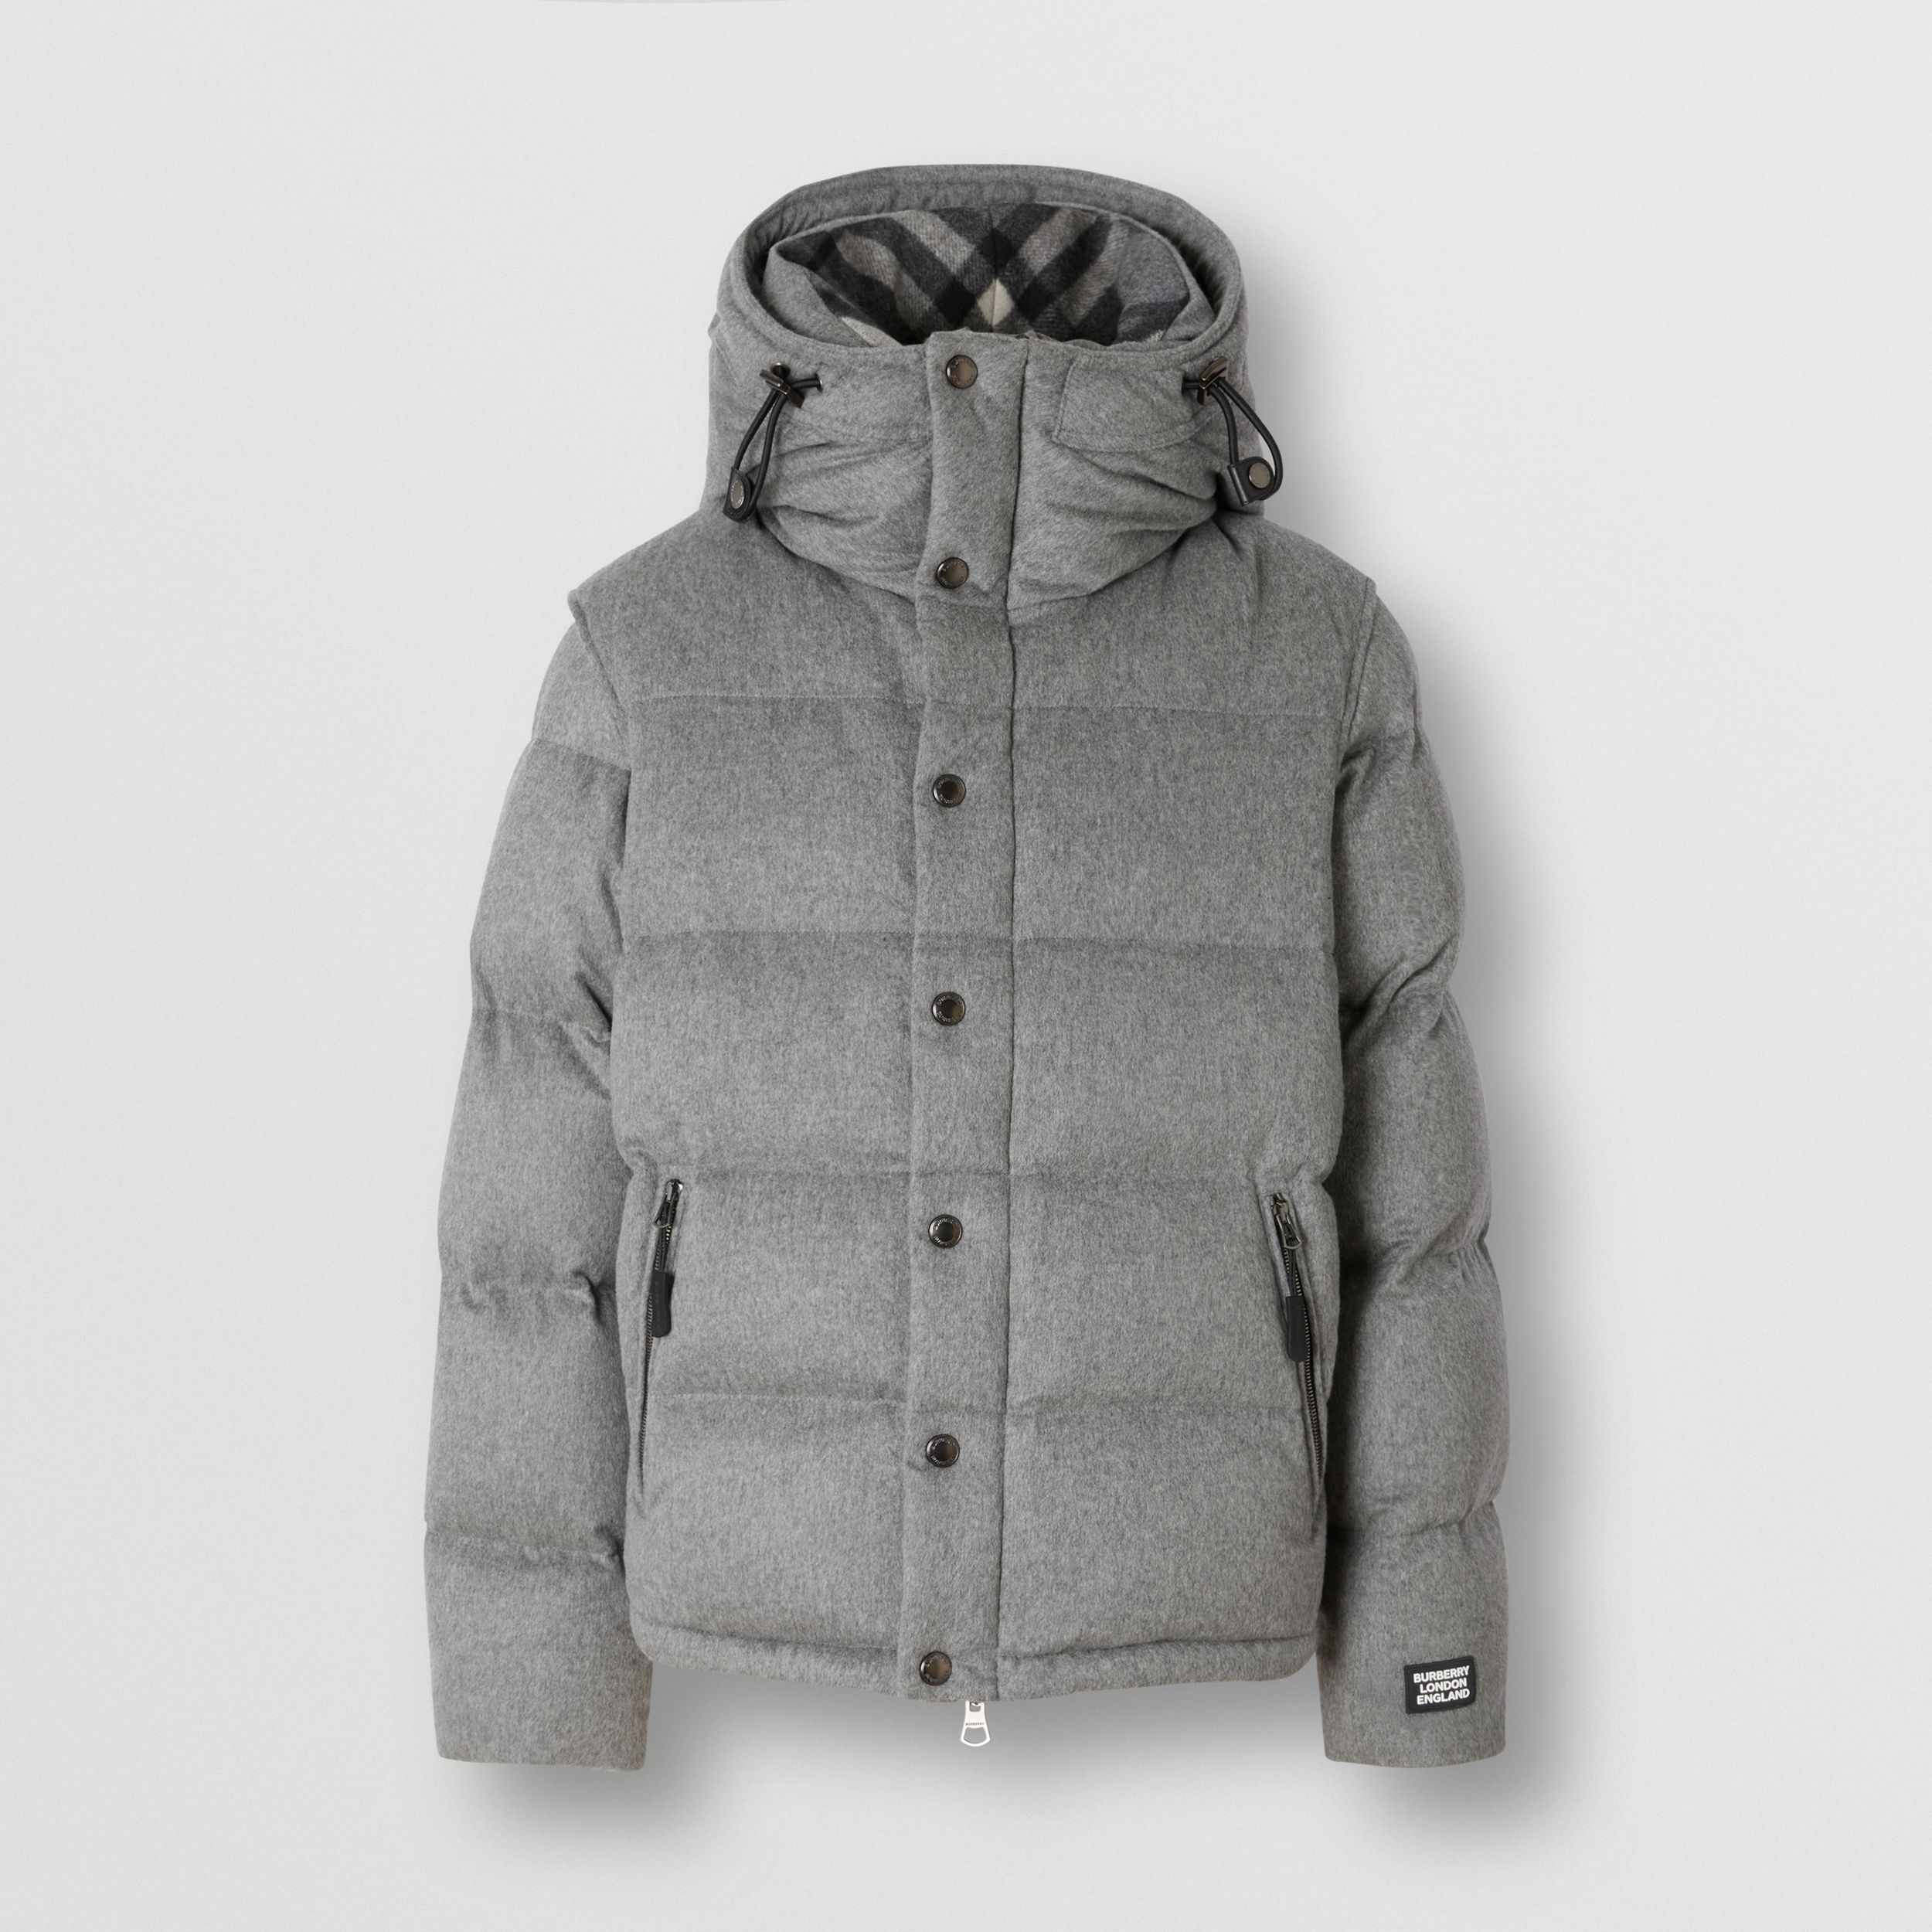 Detachable Sleeve Cashmere Hooded Puffer Jacket in Mid Grey Melange - Men | Burberry United States - 4